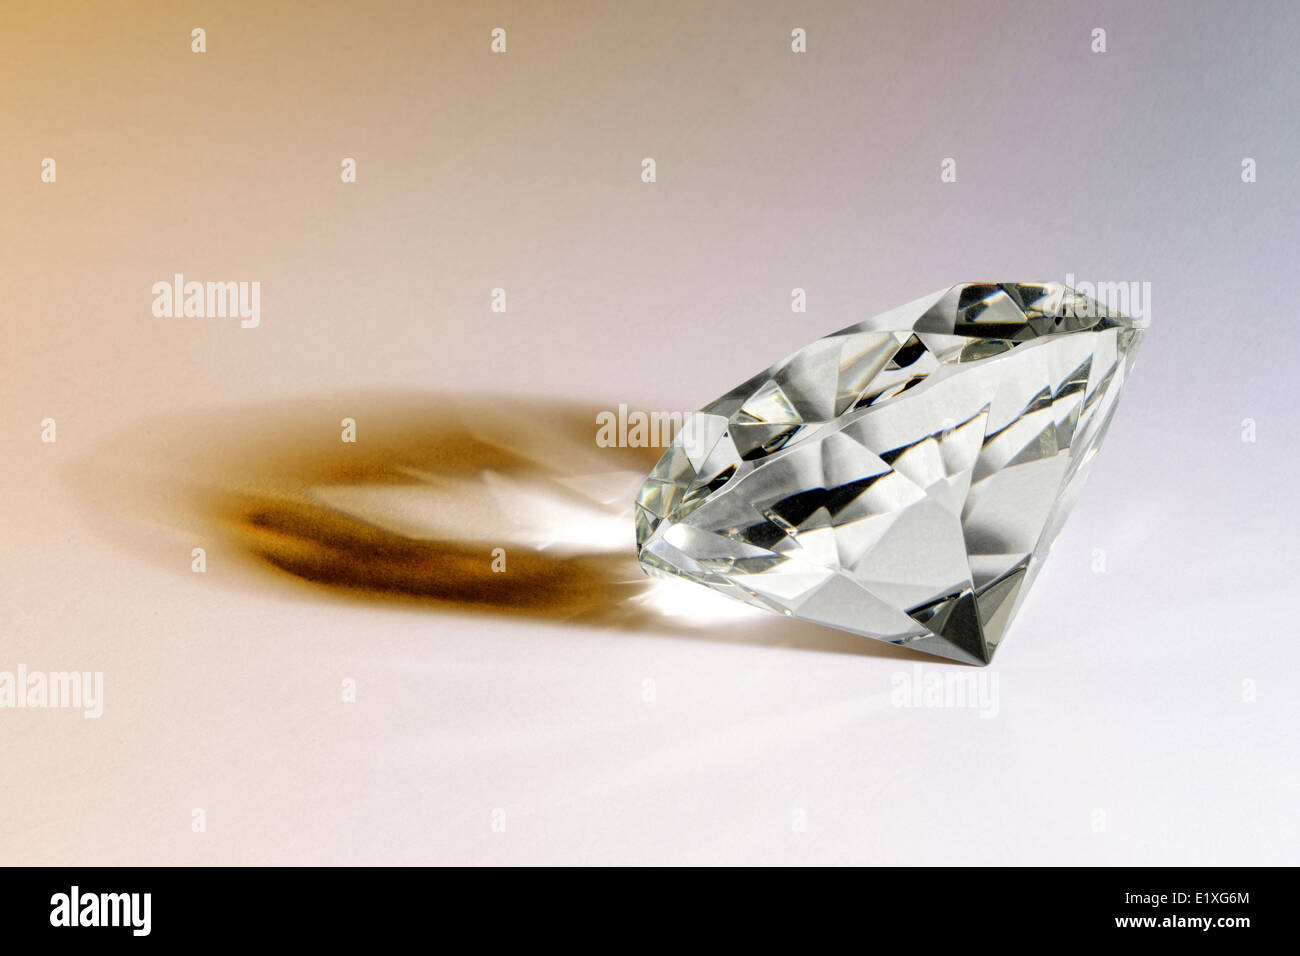 Faceted gemstone or diamond lying on its side on a white background casting an interesting shadow - Stock Image